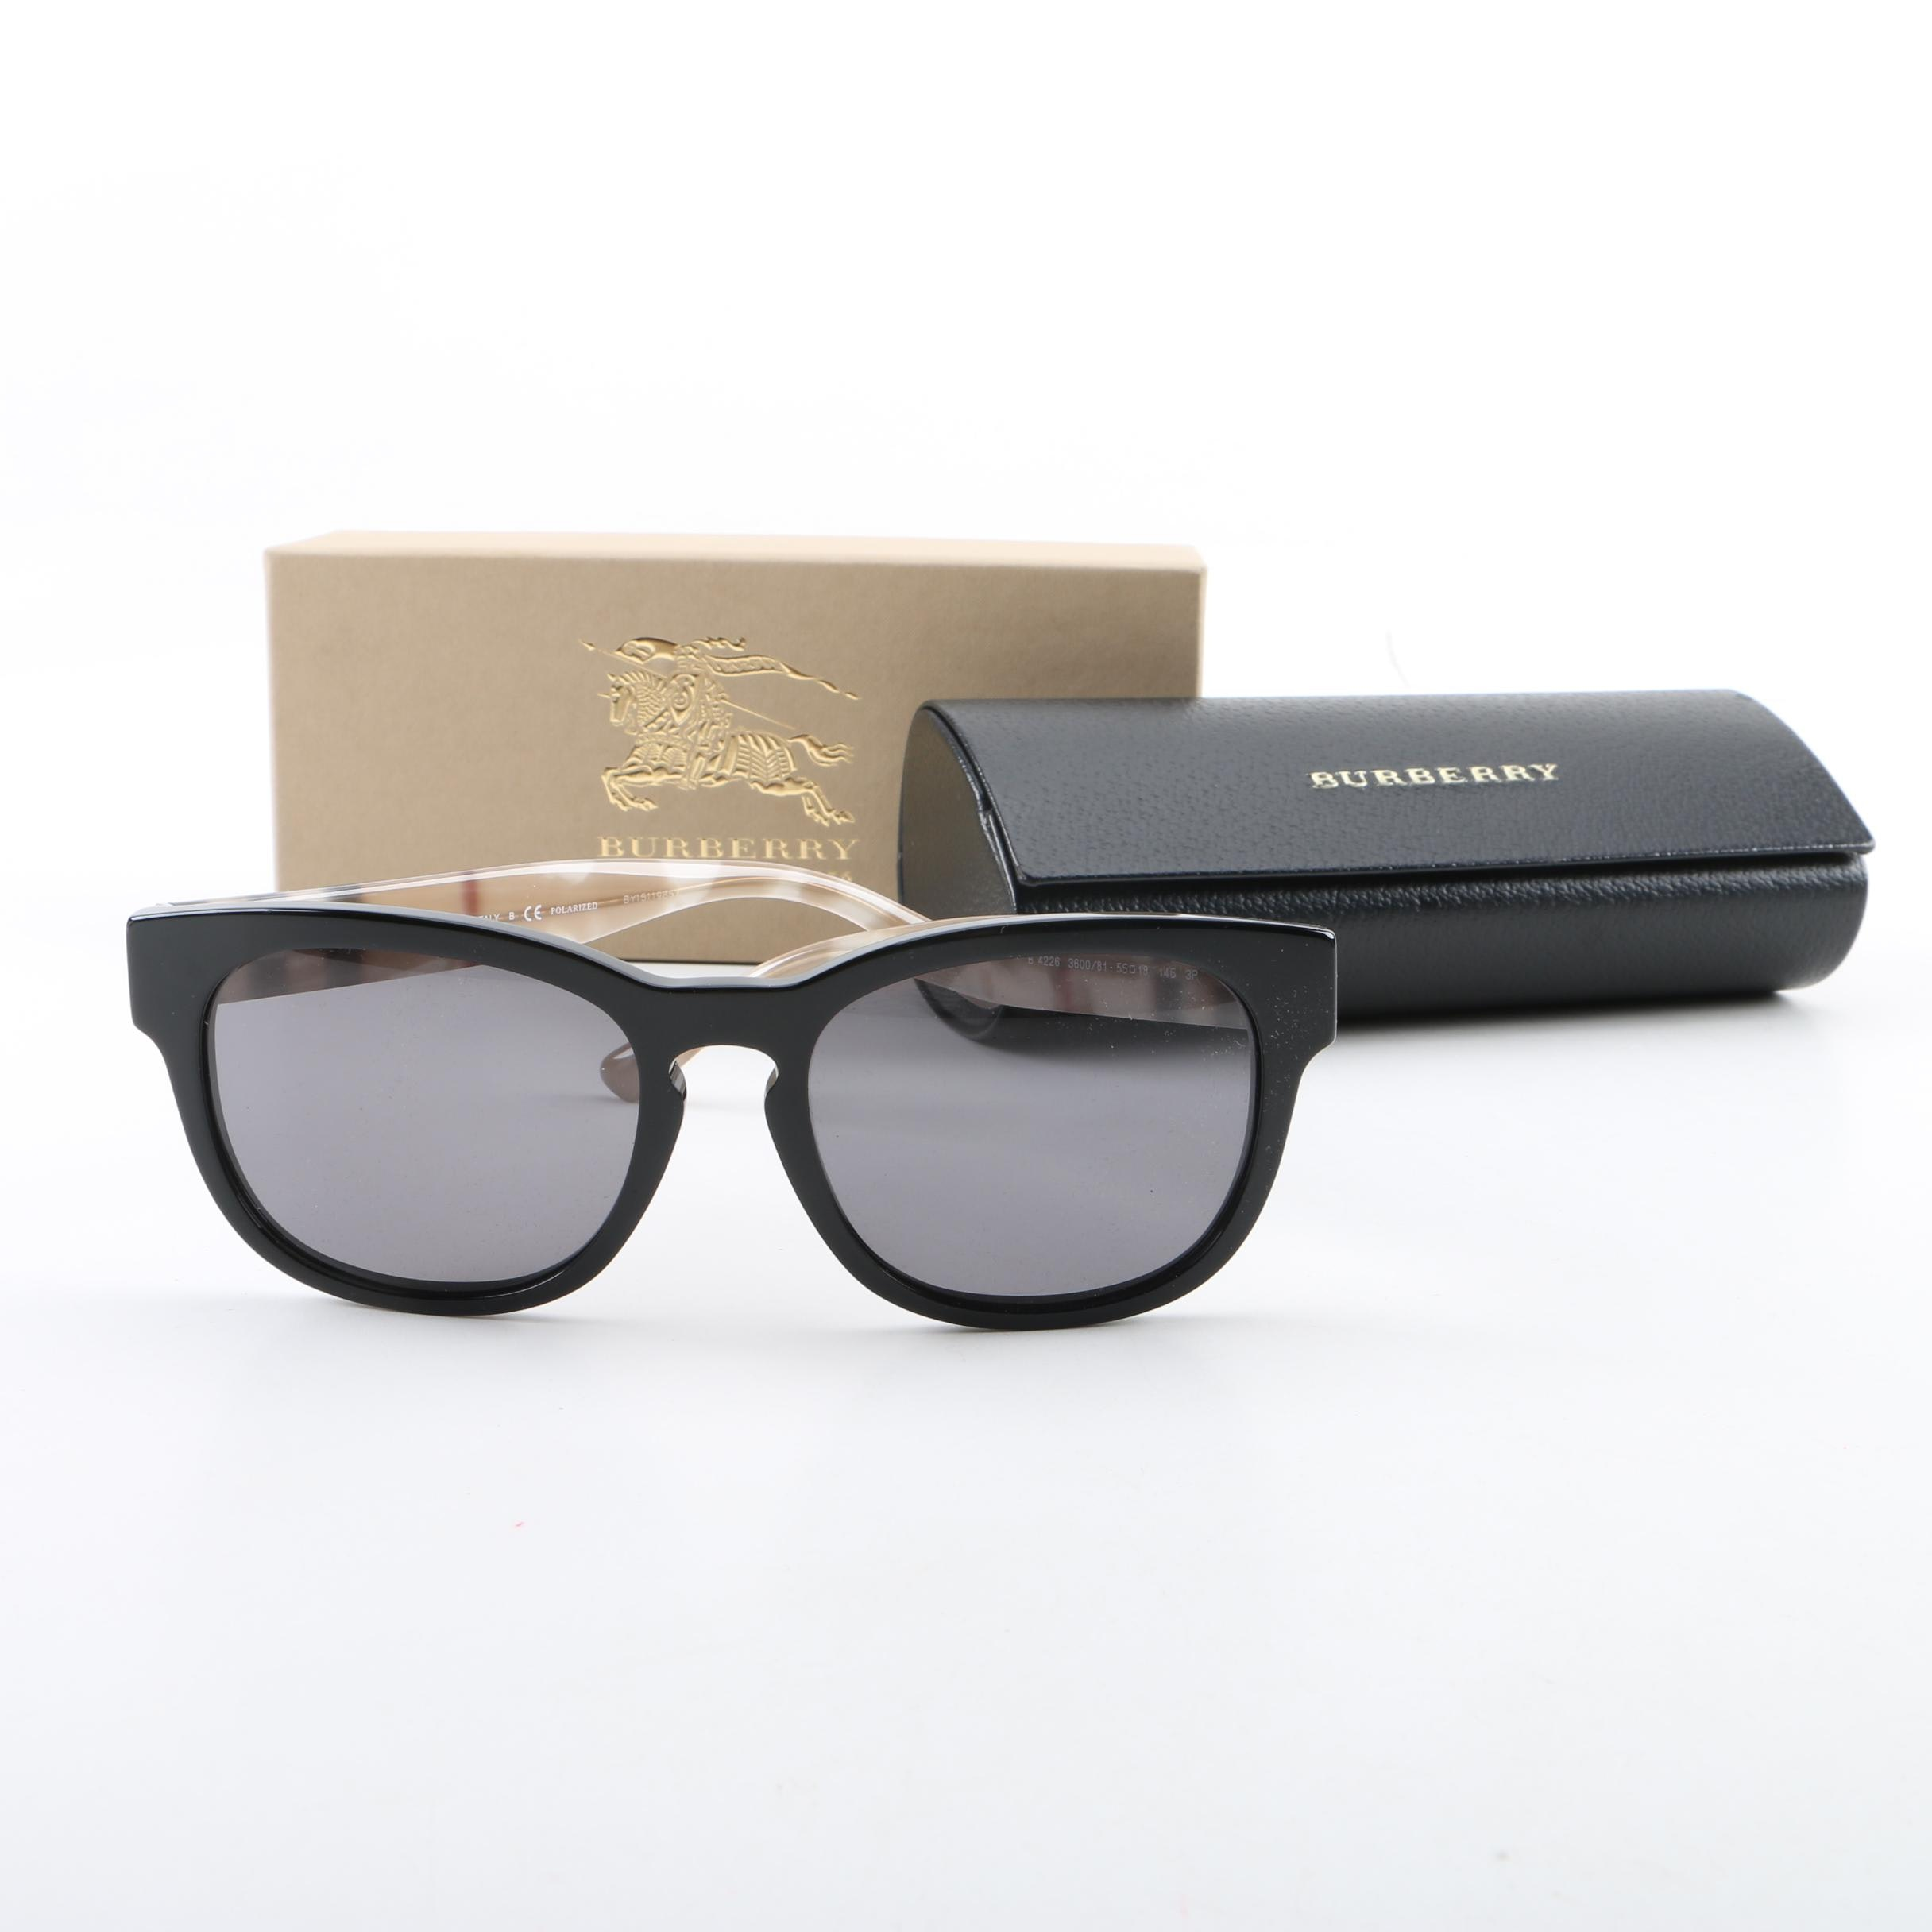 Burberry B4226 Polarized Sunglasses with Box and Case